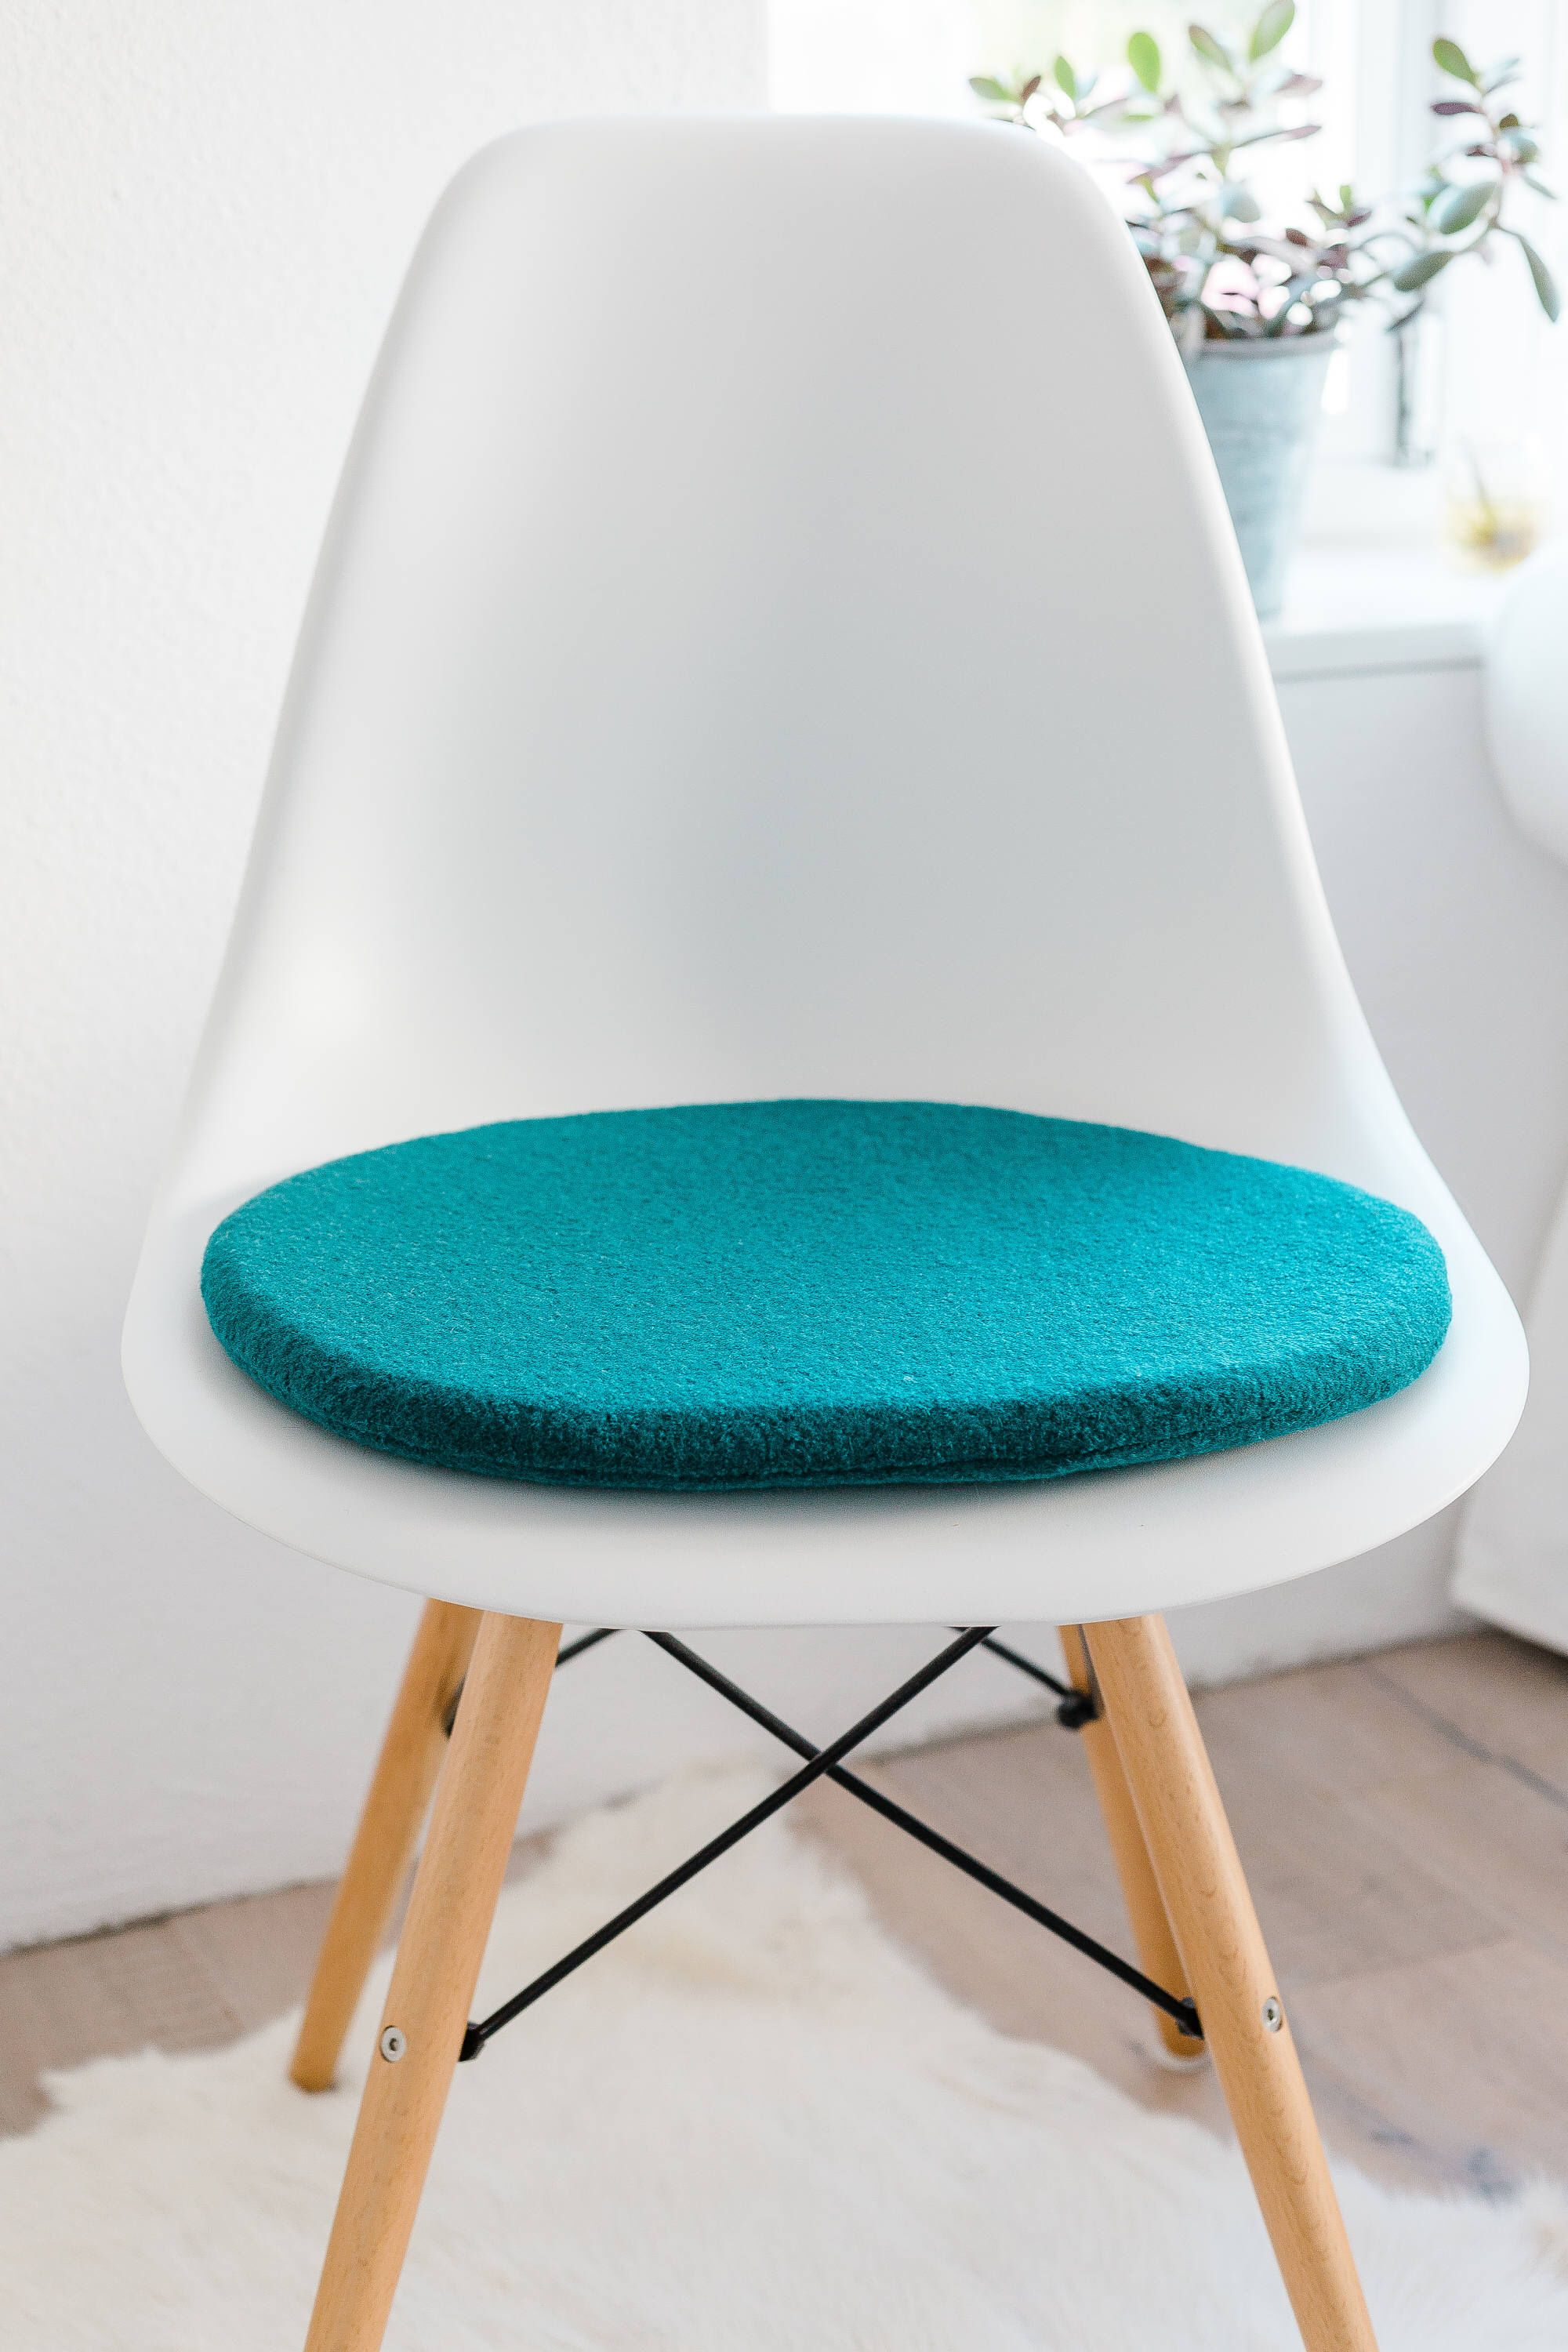 Chair Pillow For Eames Chair In Petrol, Limited In 2018 | Eames Sitzkissen  | Seat Cushions For Eames | Panton Chair Sitzkissen | Pinterest | Seat  Cushions, ...